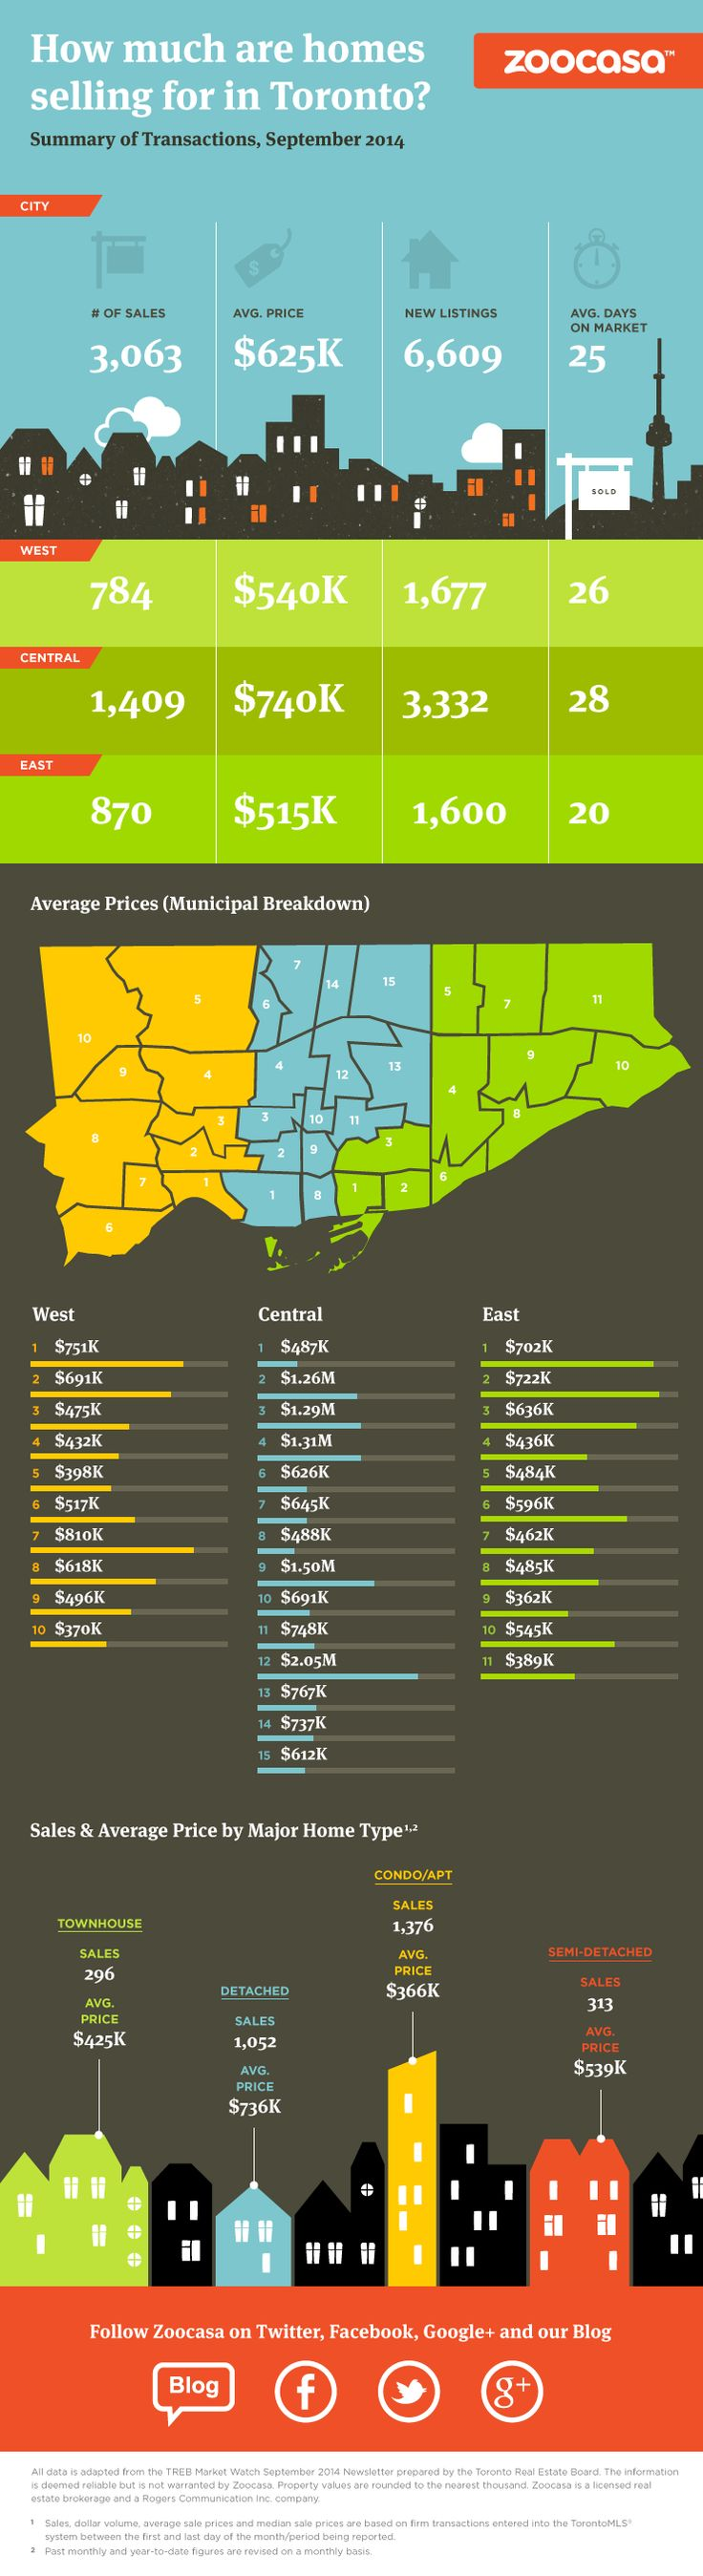 Toronto Home Prices in September 2014 (Infographic)